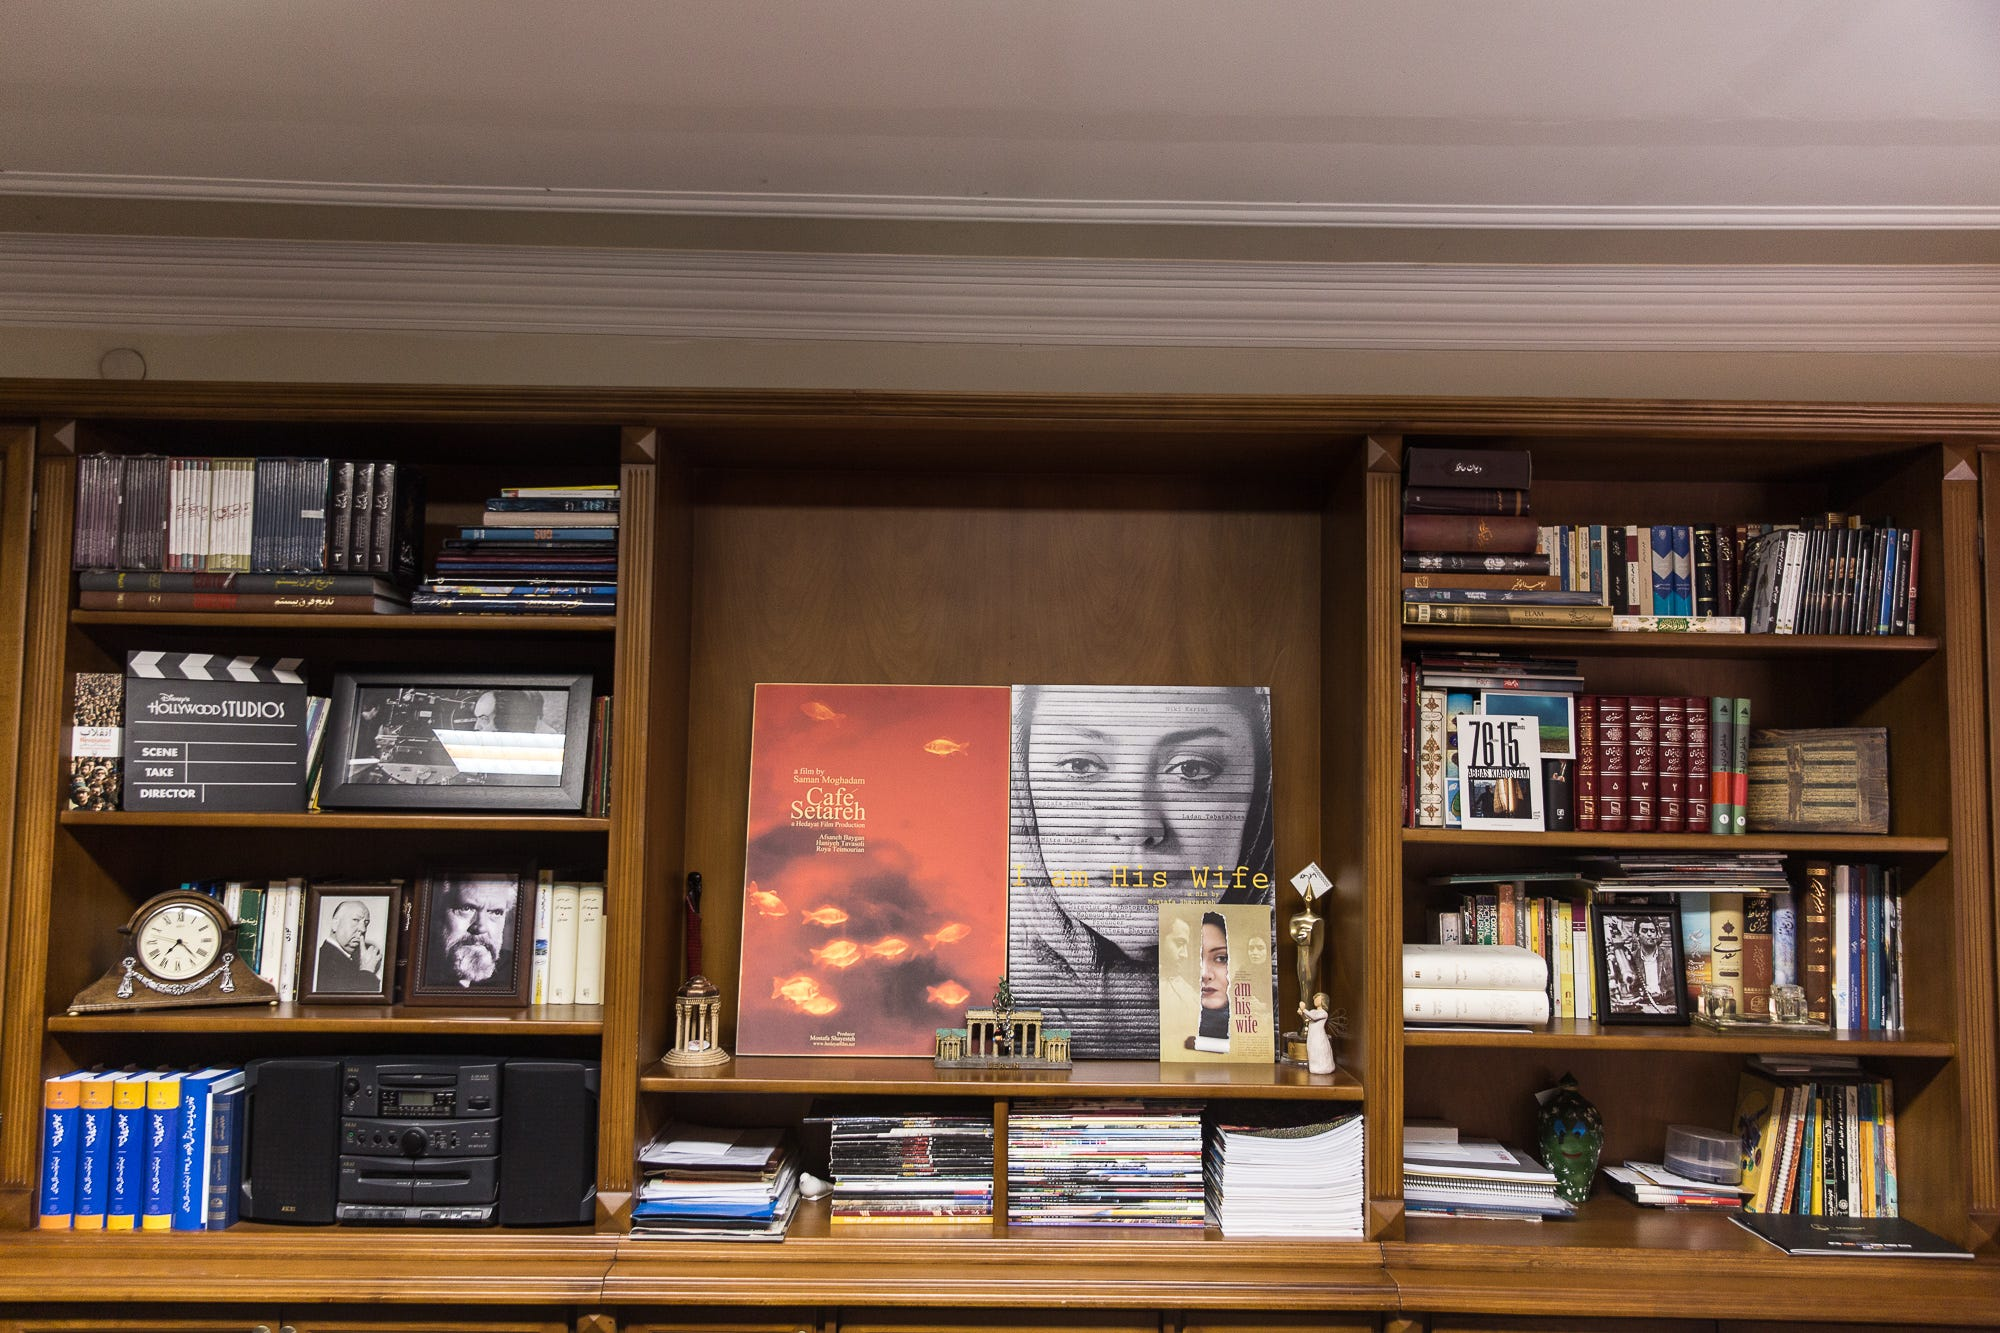 A bookshelf is filled with movie-related posters, photos and memorabilia at the offices of the Hedayat Film Co., an Iranian movie production firm, in Tehran.